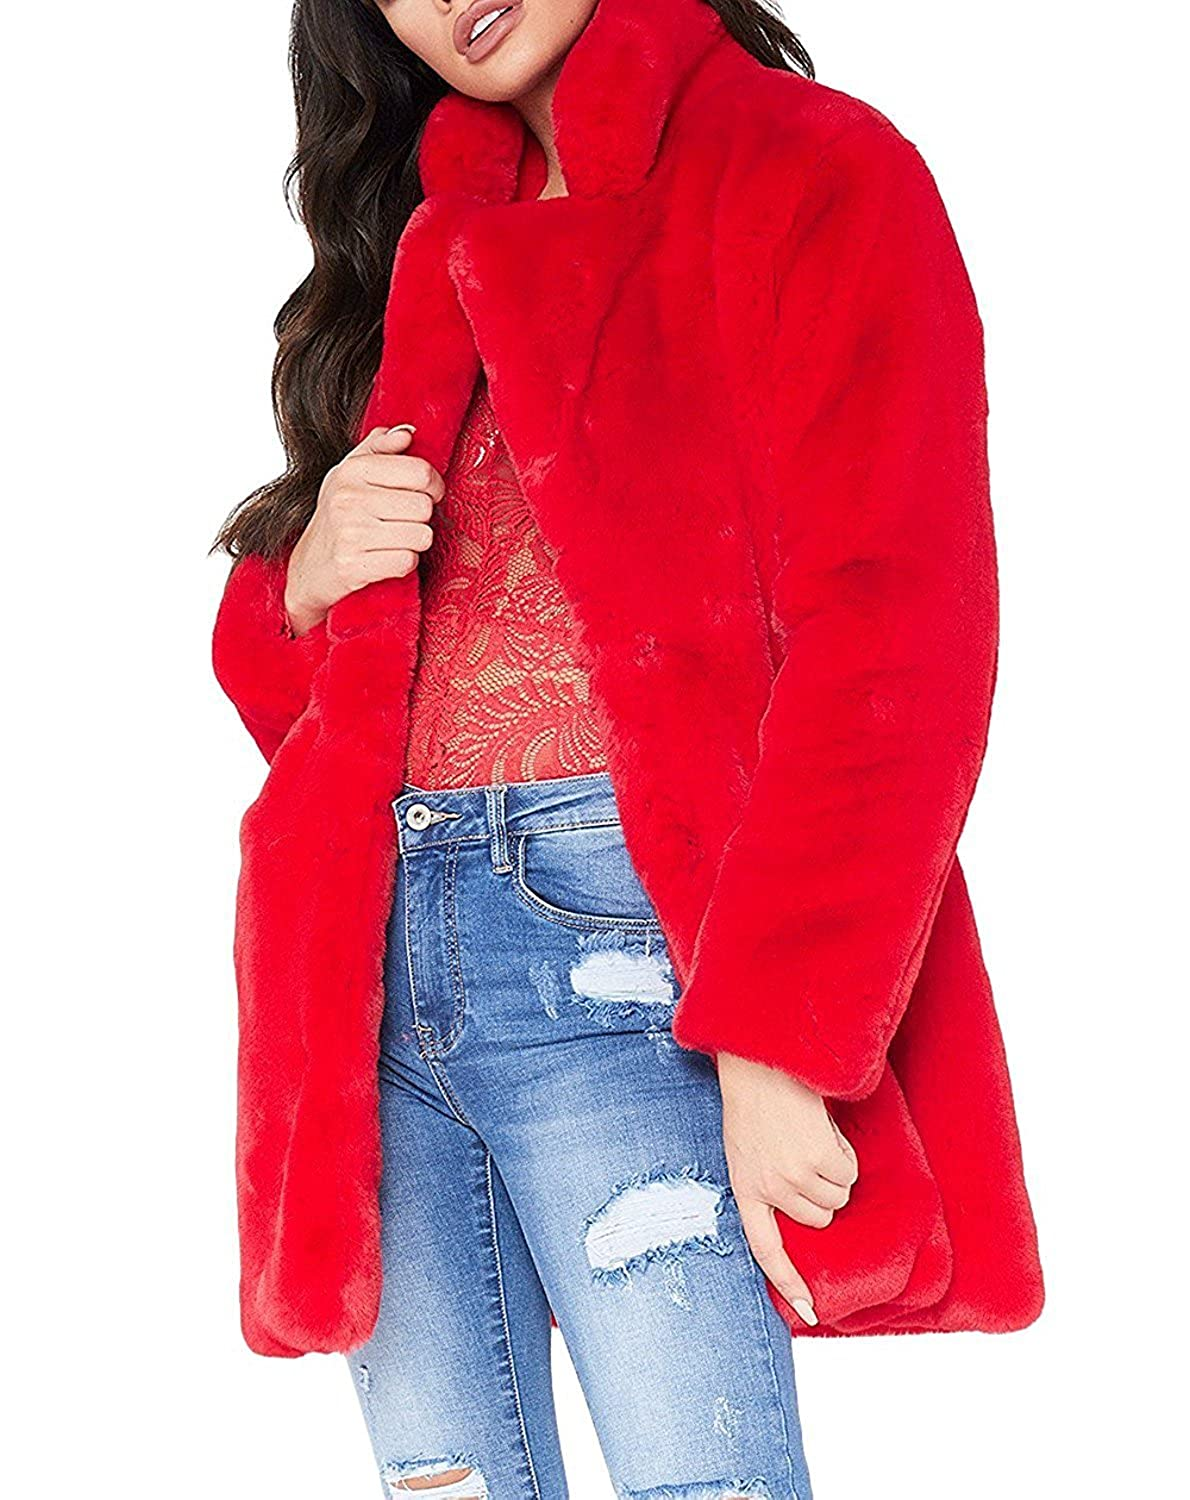 Salimdy Womens Winter Coat Fluffy Faux Fur Warm Outwear Coat Long Sleeve Jacket Pockets Cardigan